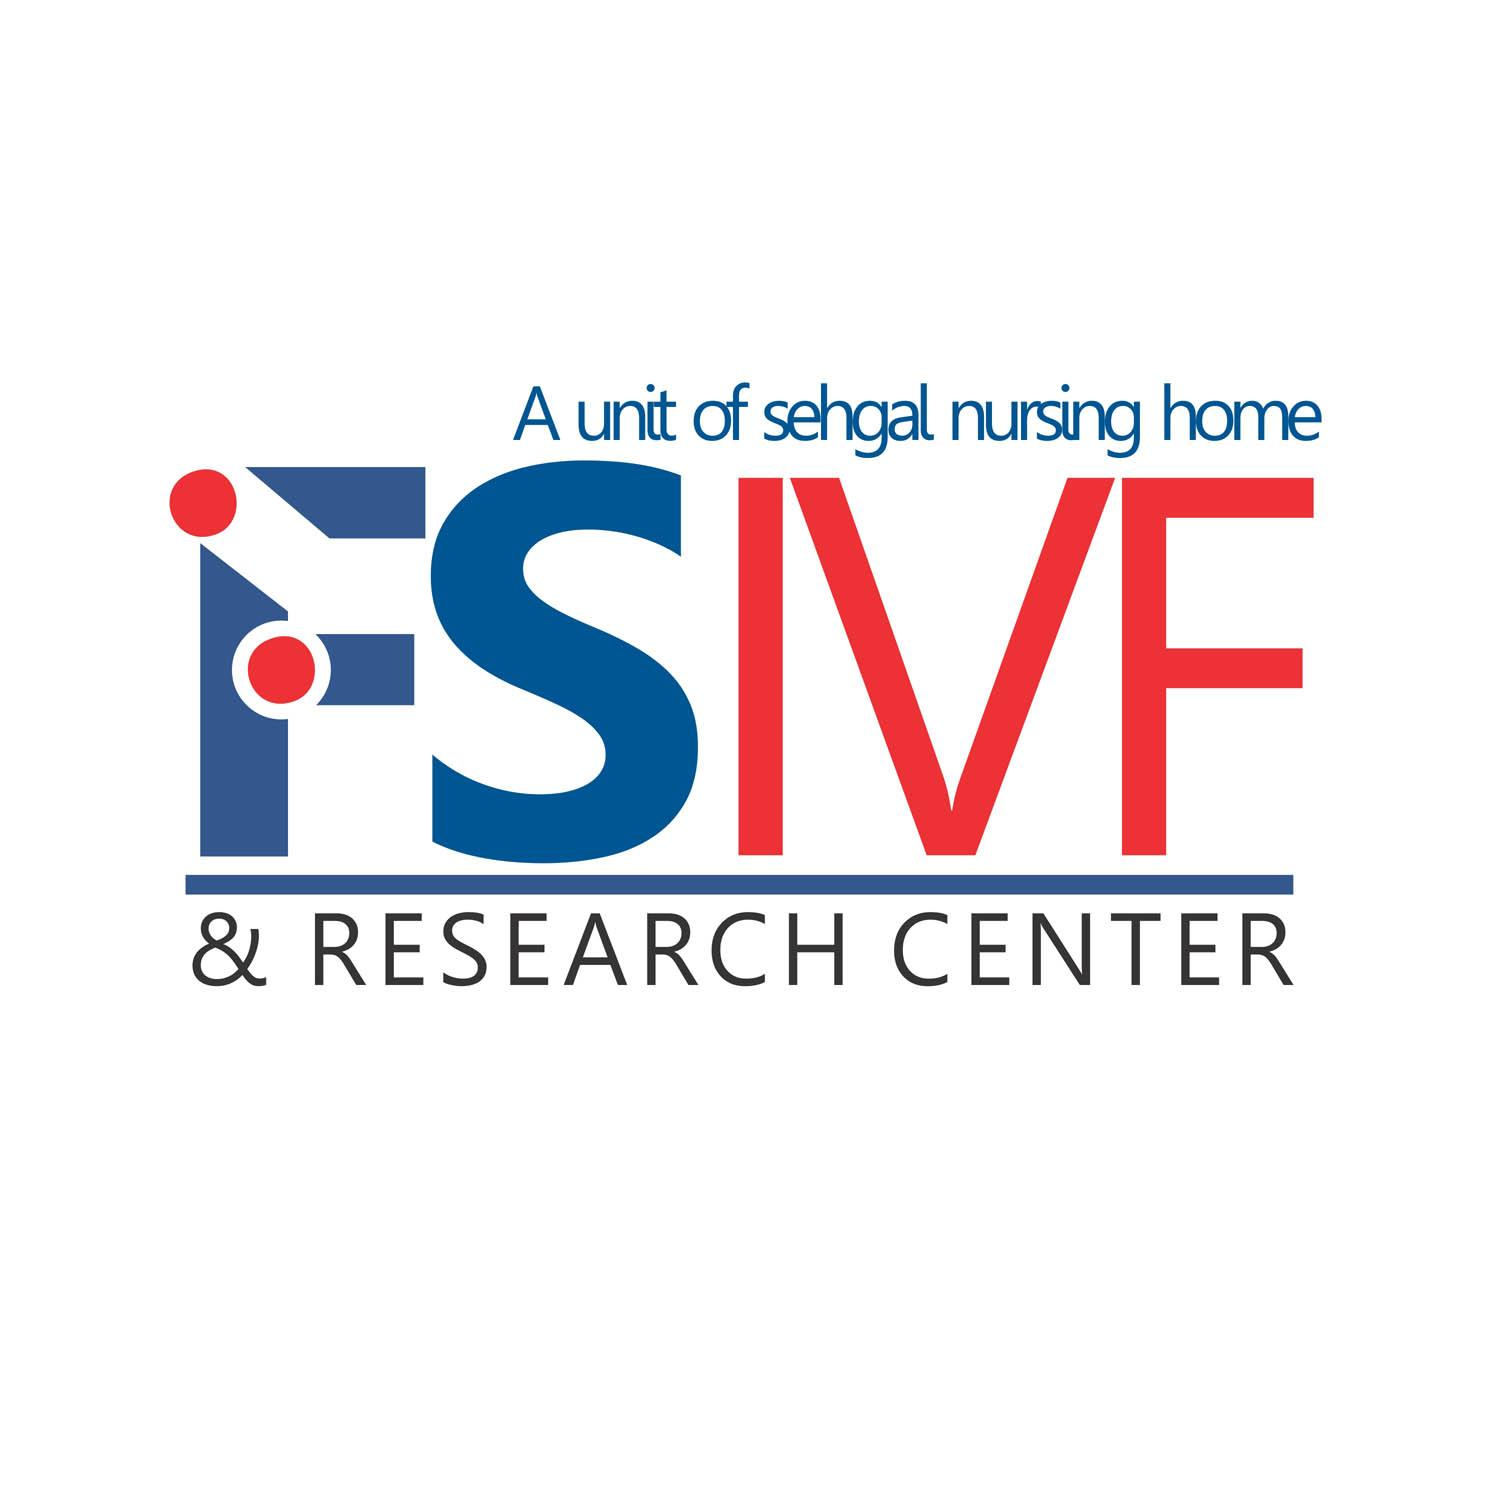 FSIVF & Research Center